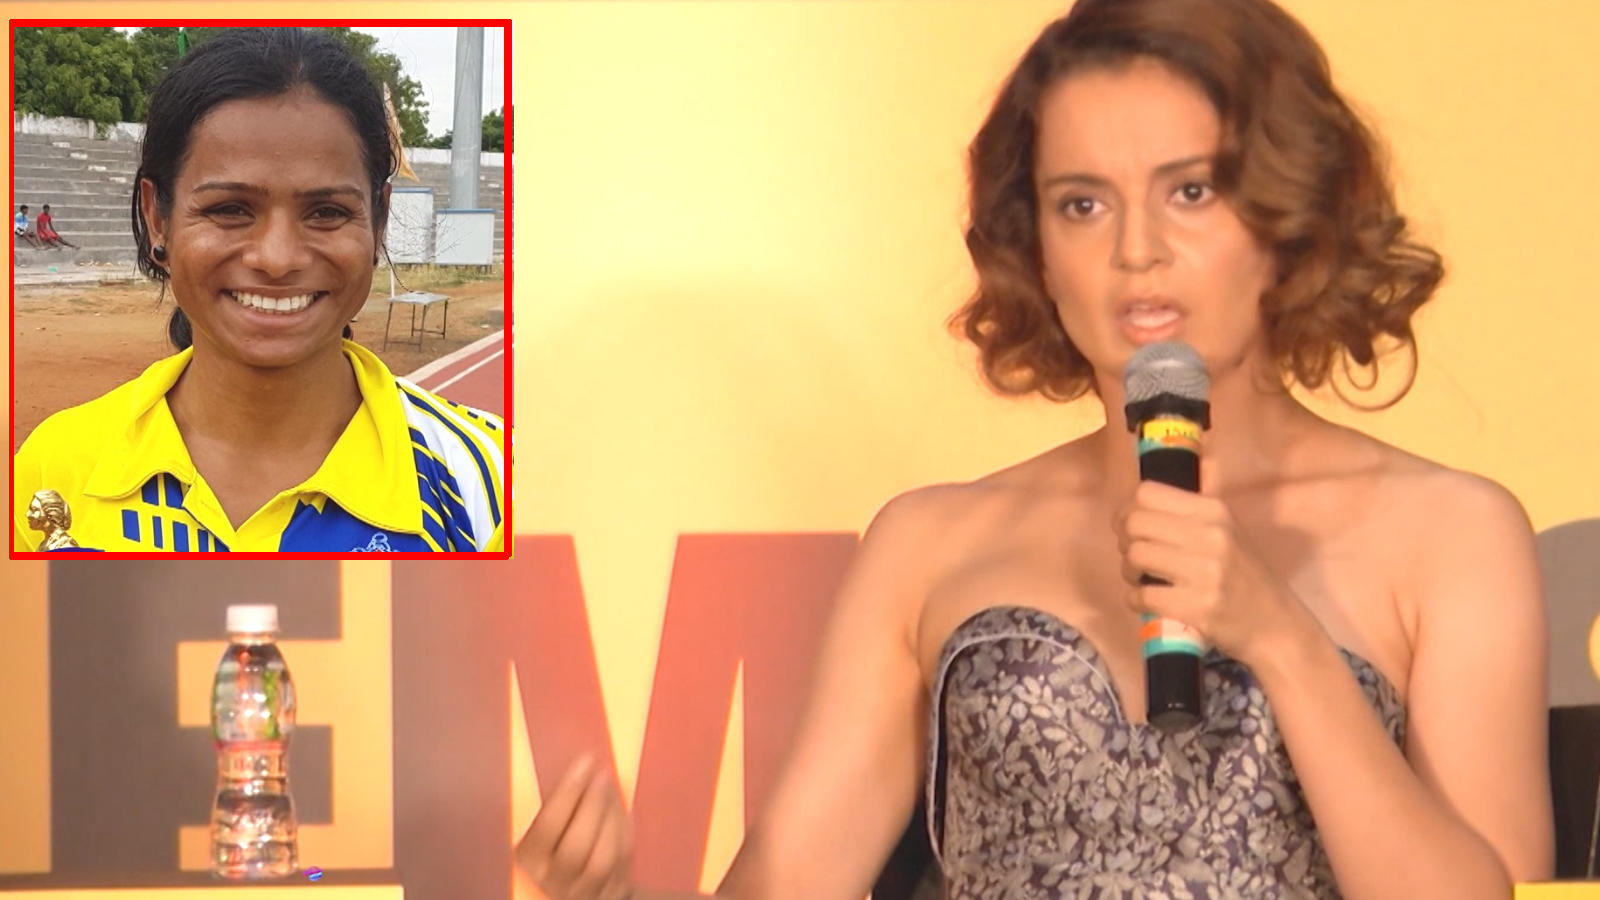 kangana-ranaut-humbled-that-dutee-chand-feels-i-am-worthy-of-playing-her